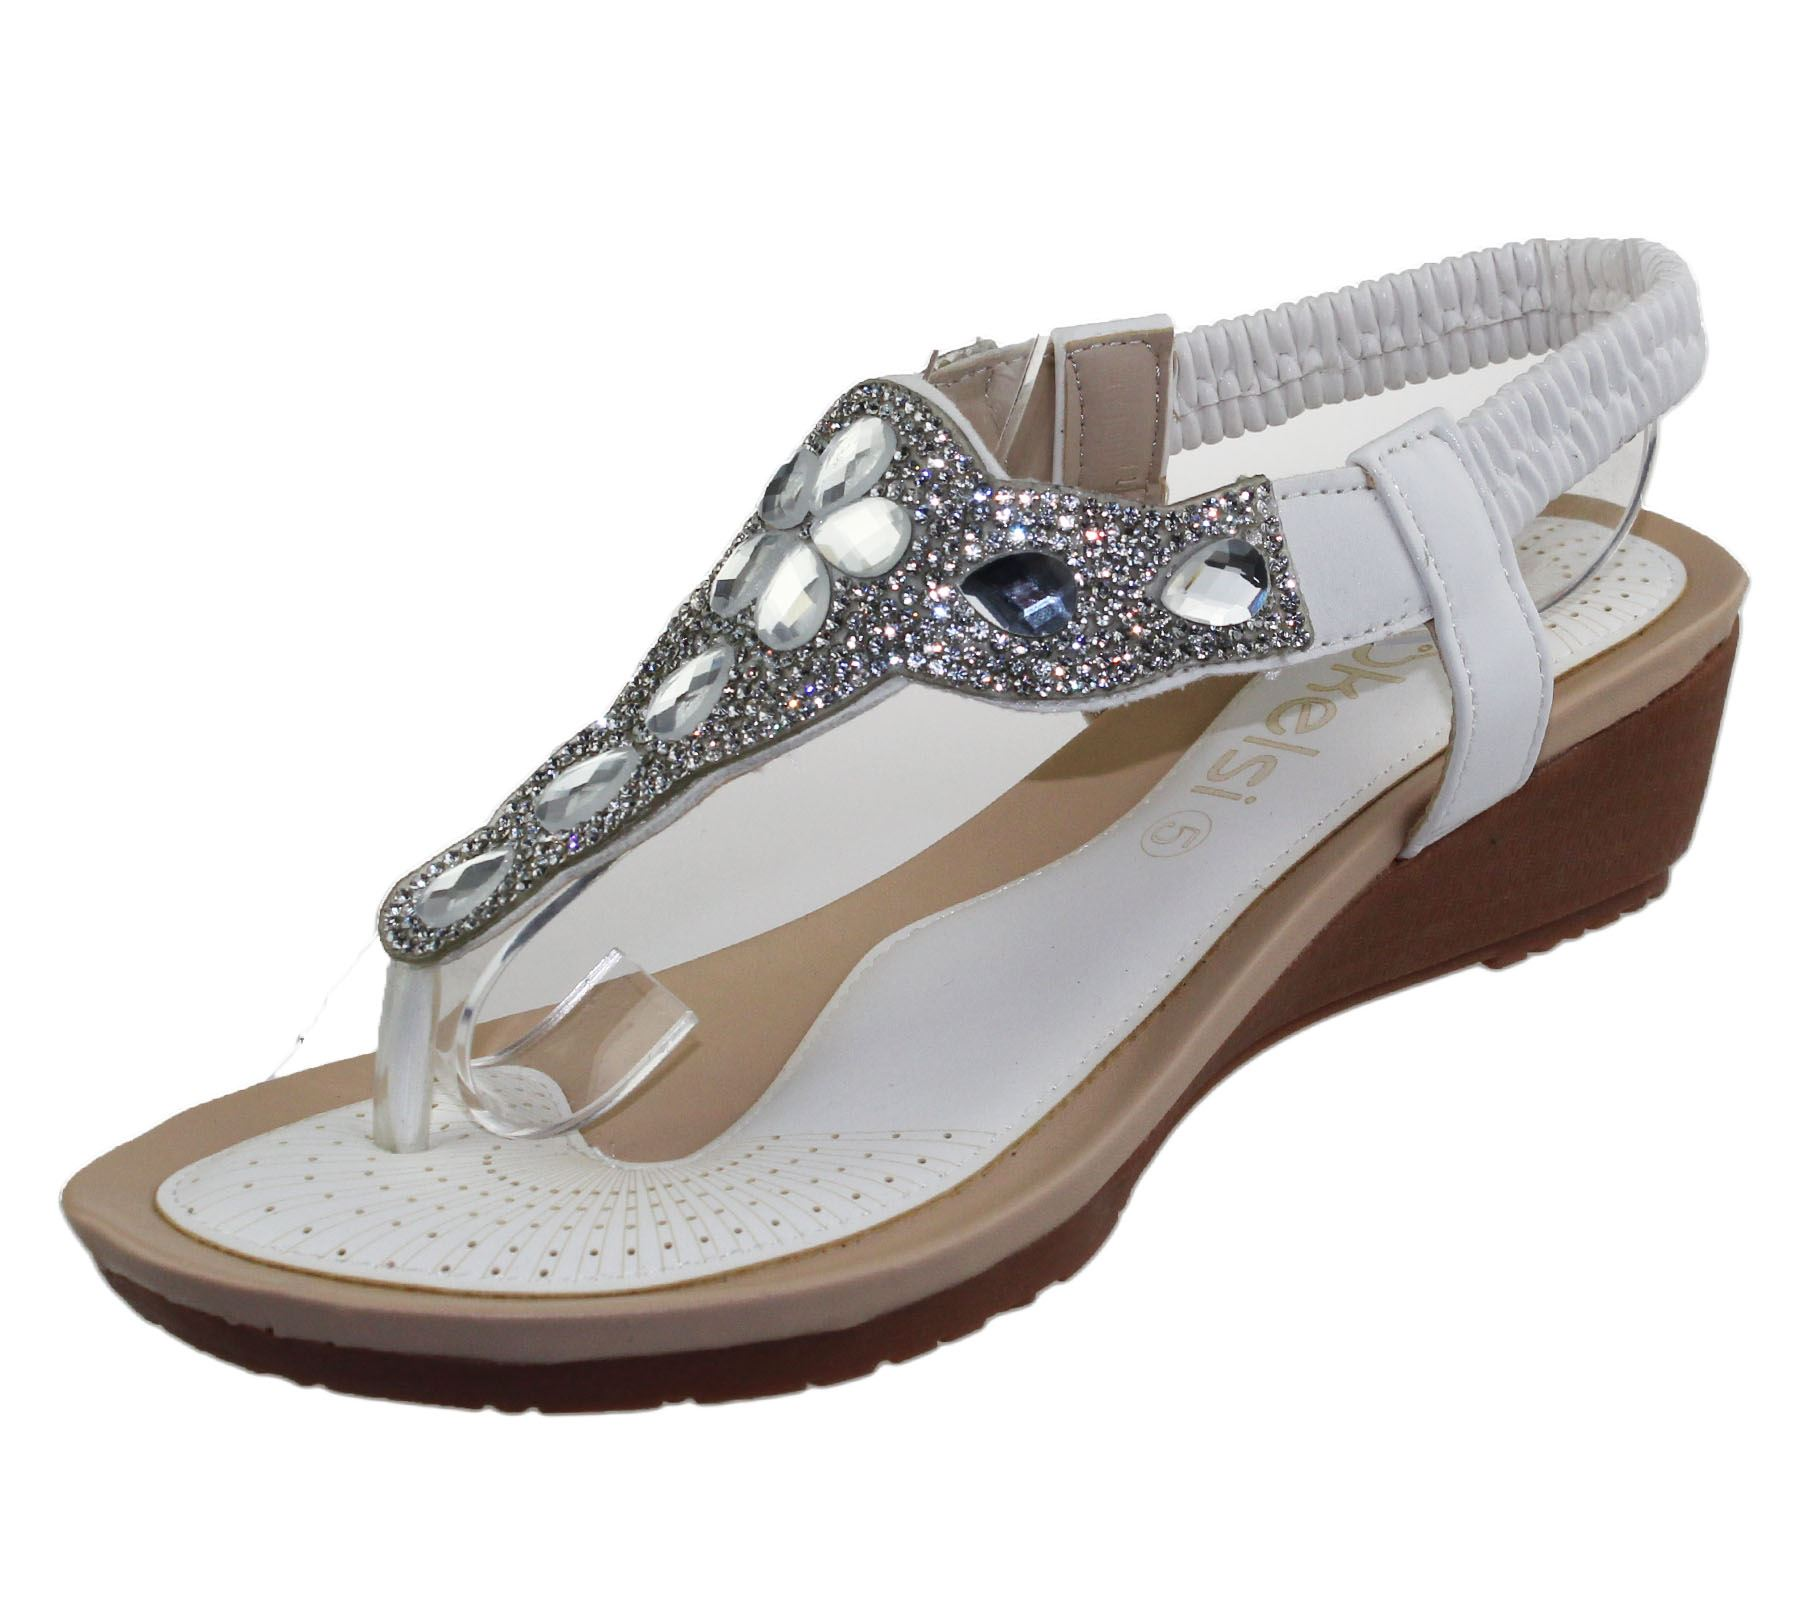 acfdf83b8d03 Womens Wedge Heel Sandals Ladies Diamante Toe Post Summer Beach ...